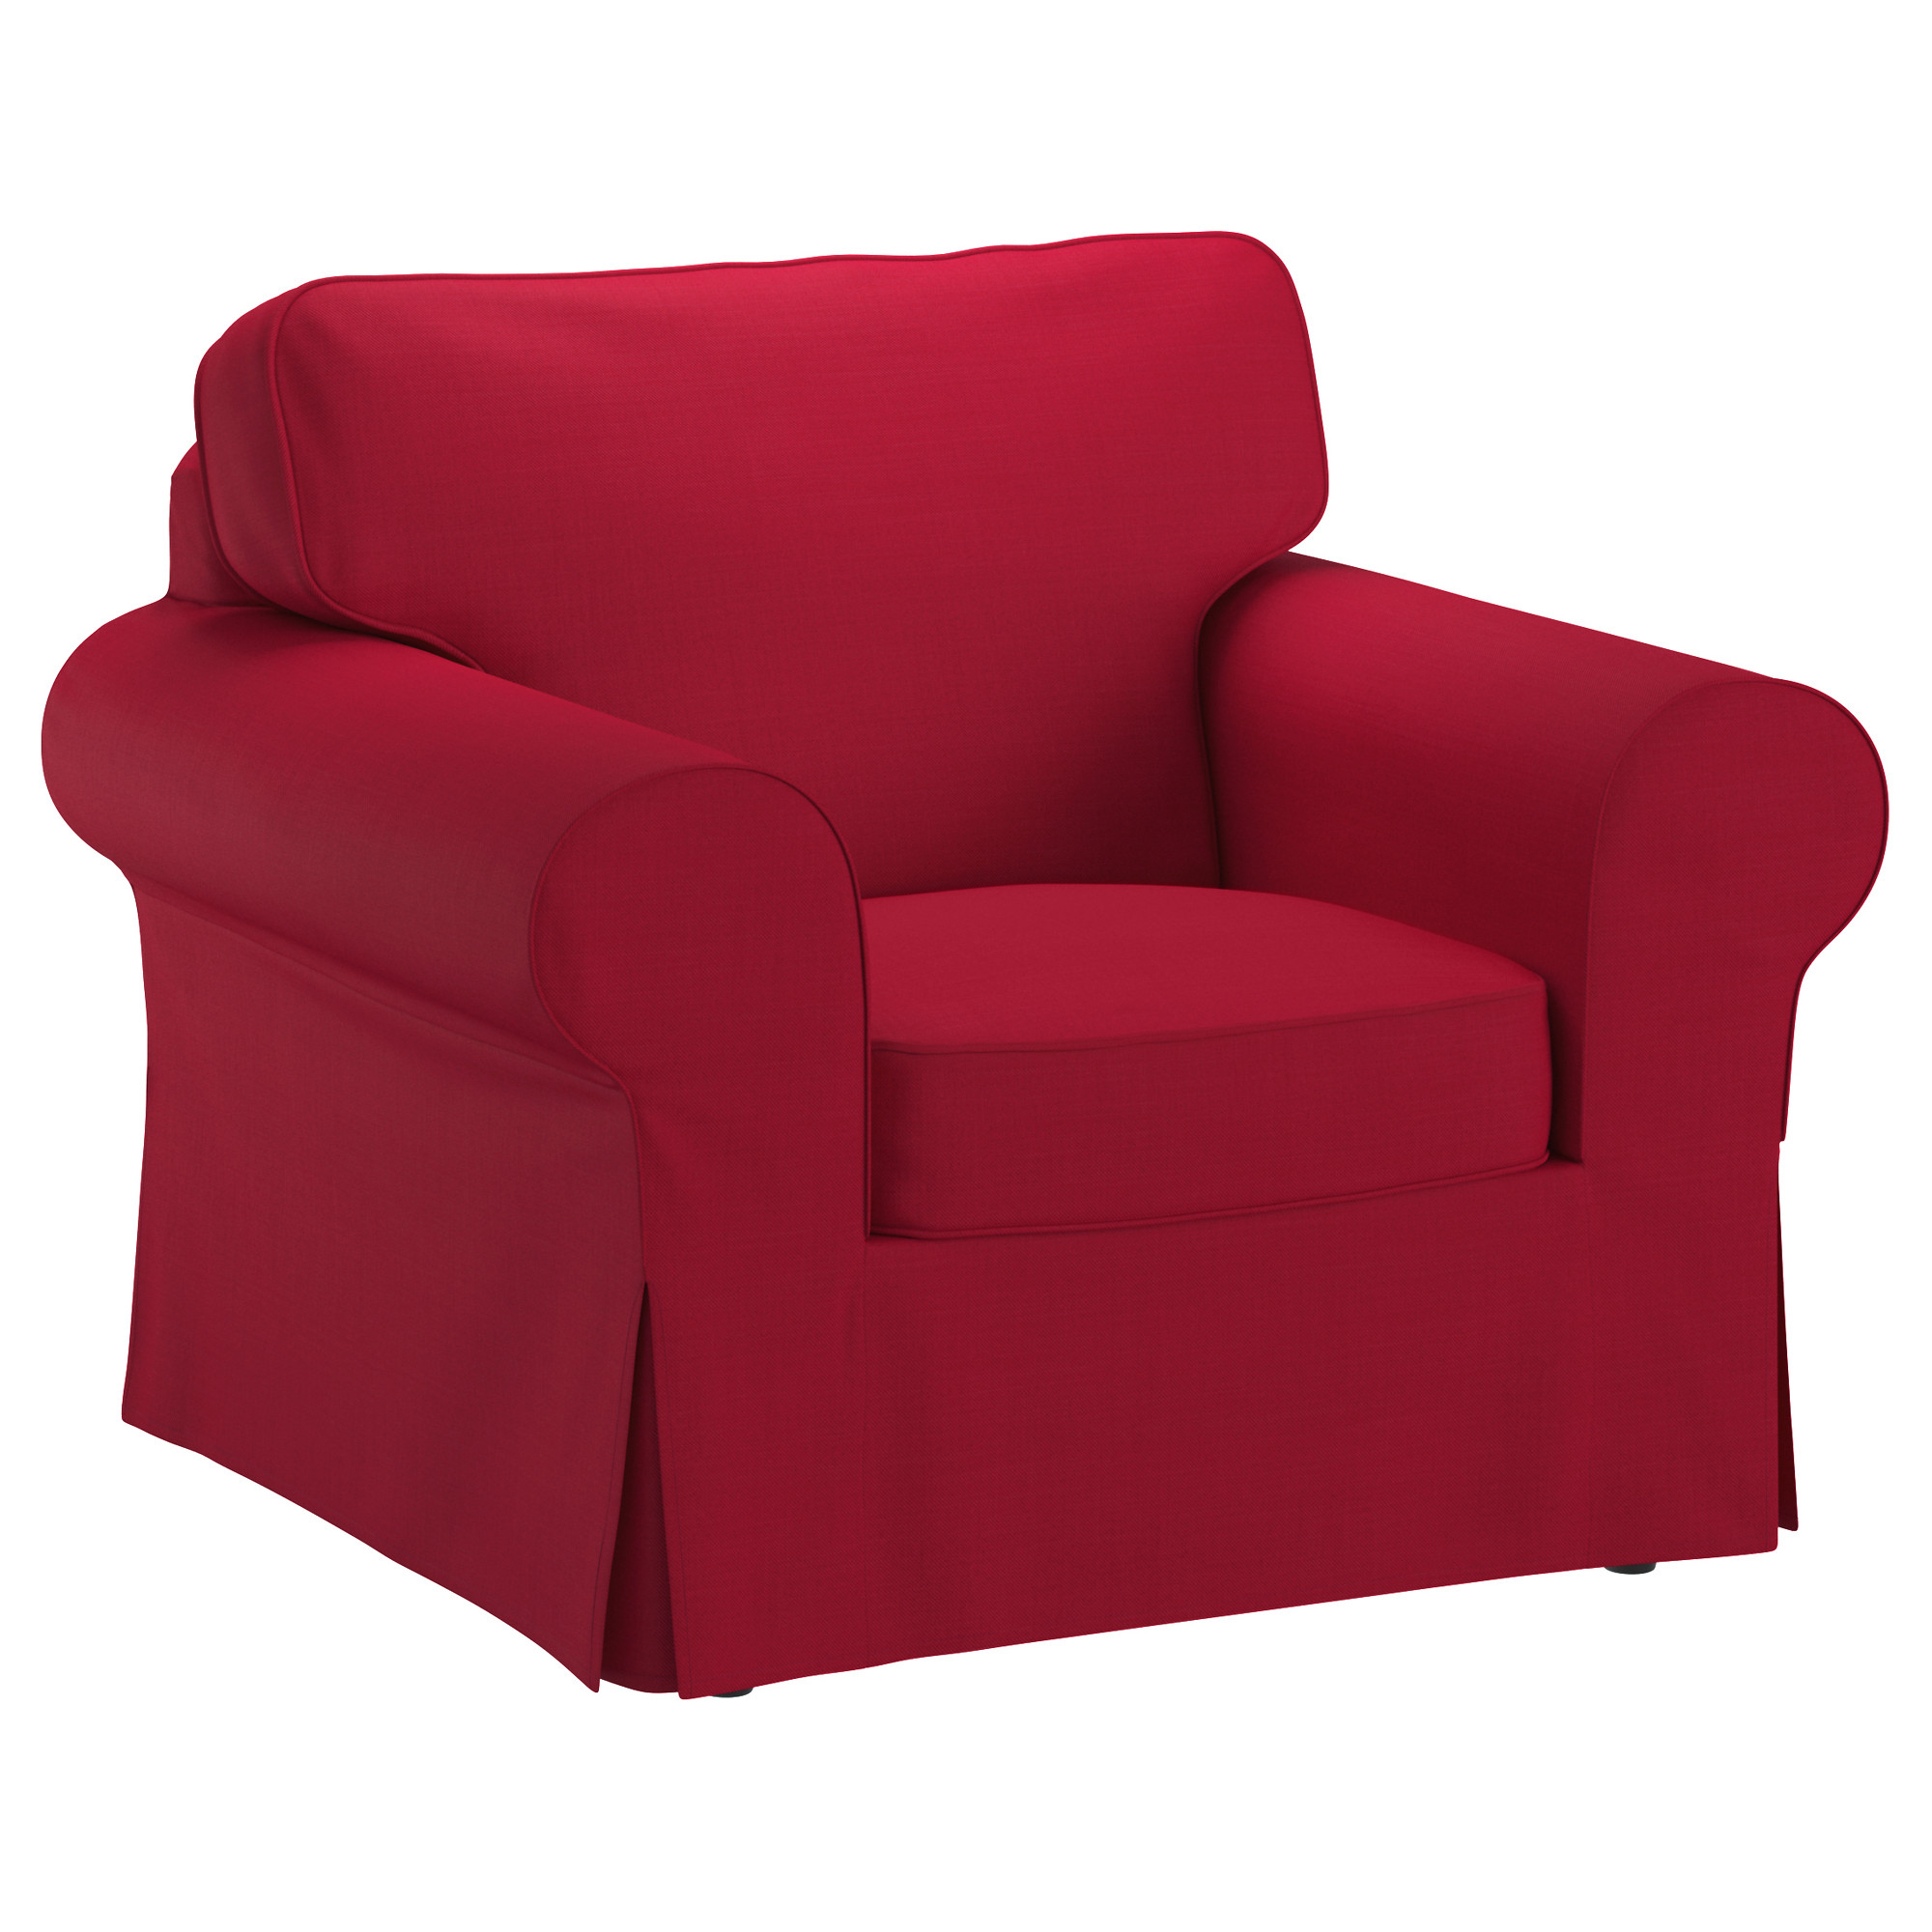 Well Known Red Sofas And Chairs Within Ikea Ektorp Armchair The Cover Is Easy To Keep Clean As It Is (View 5 of 20)